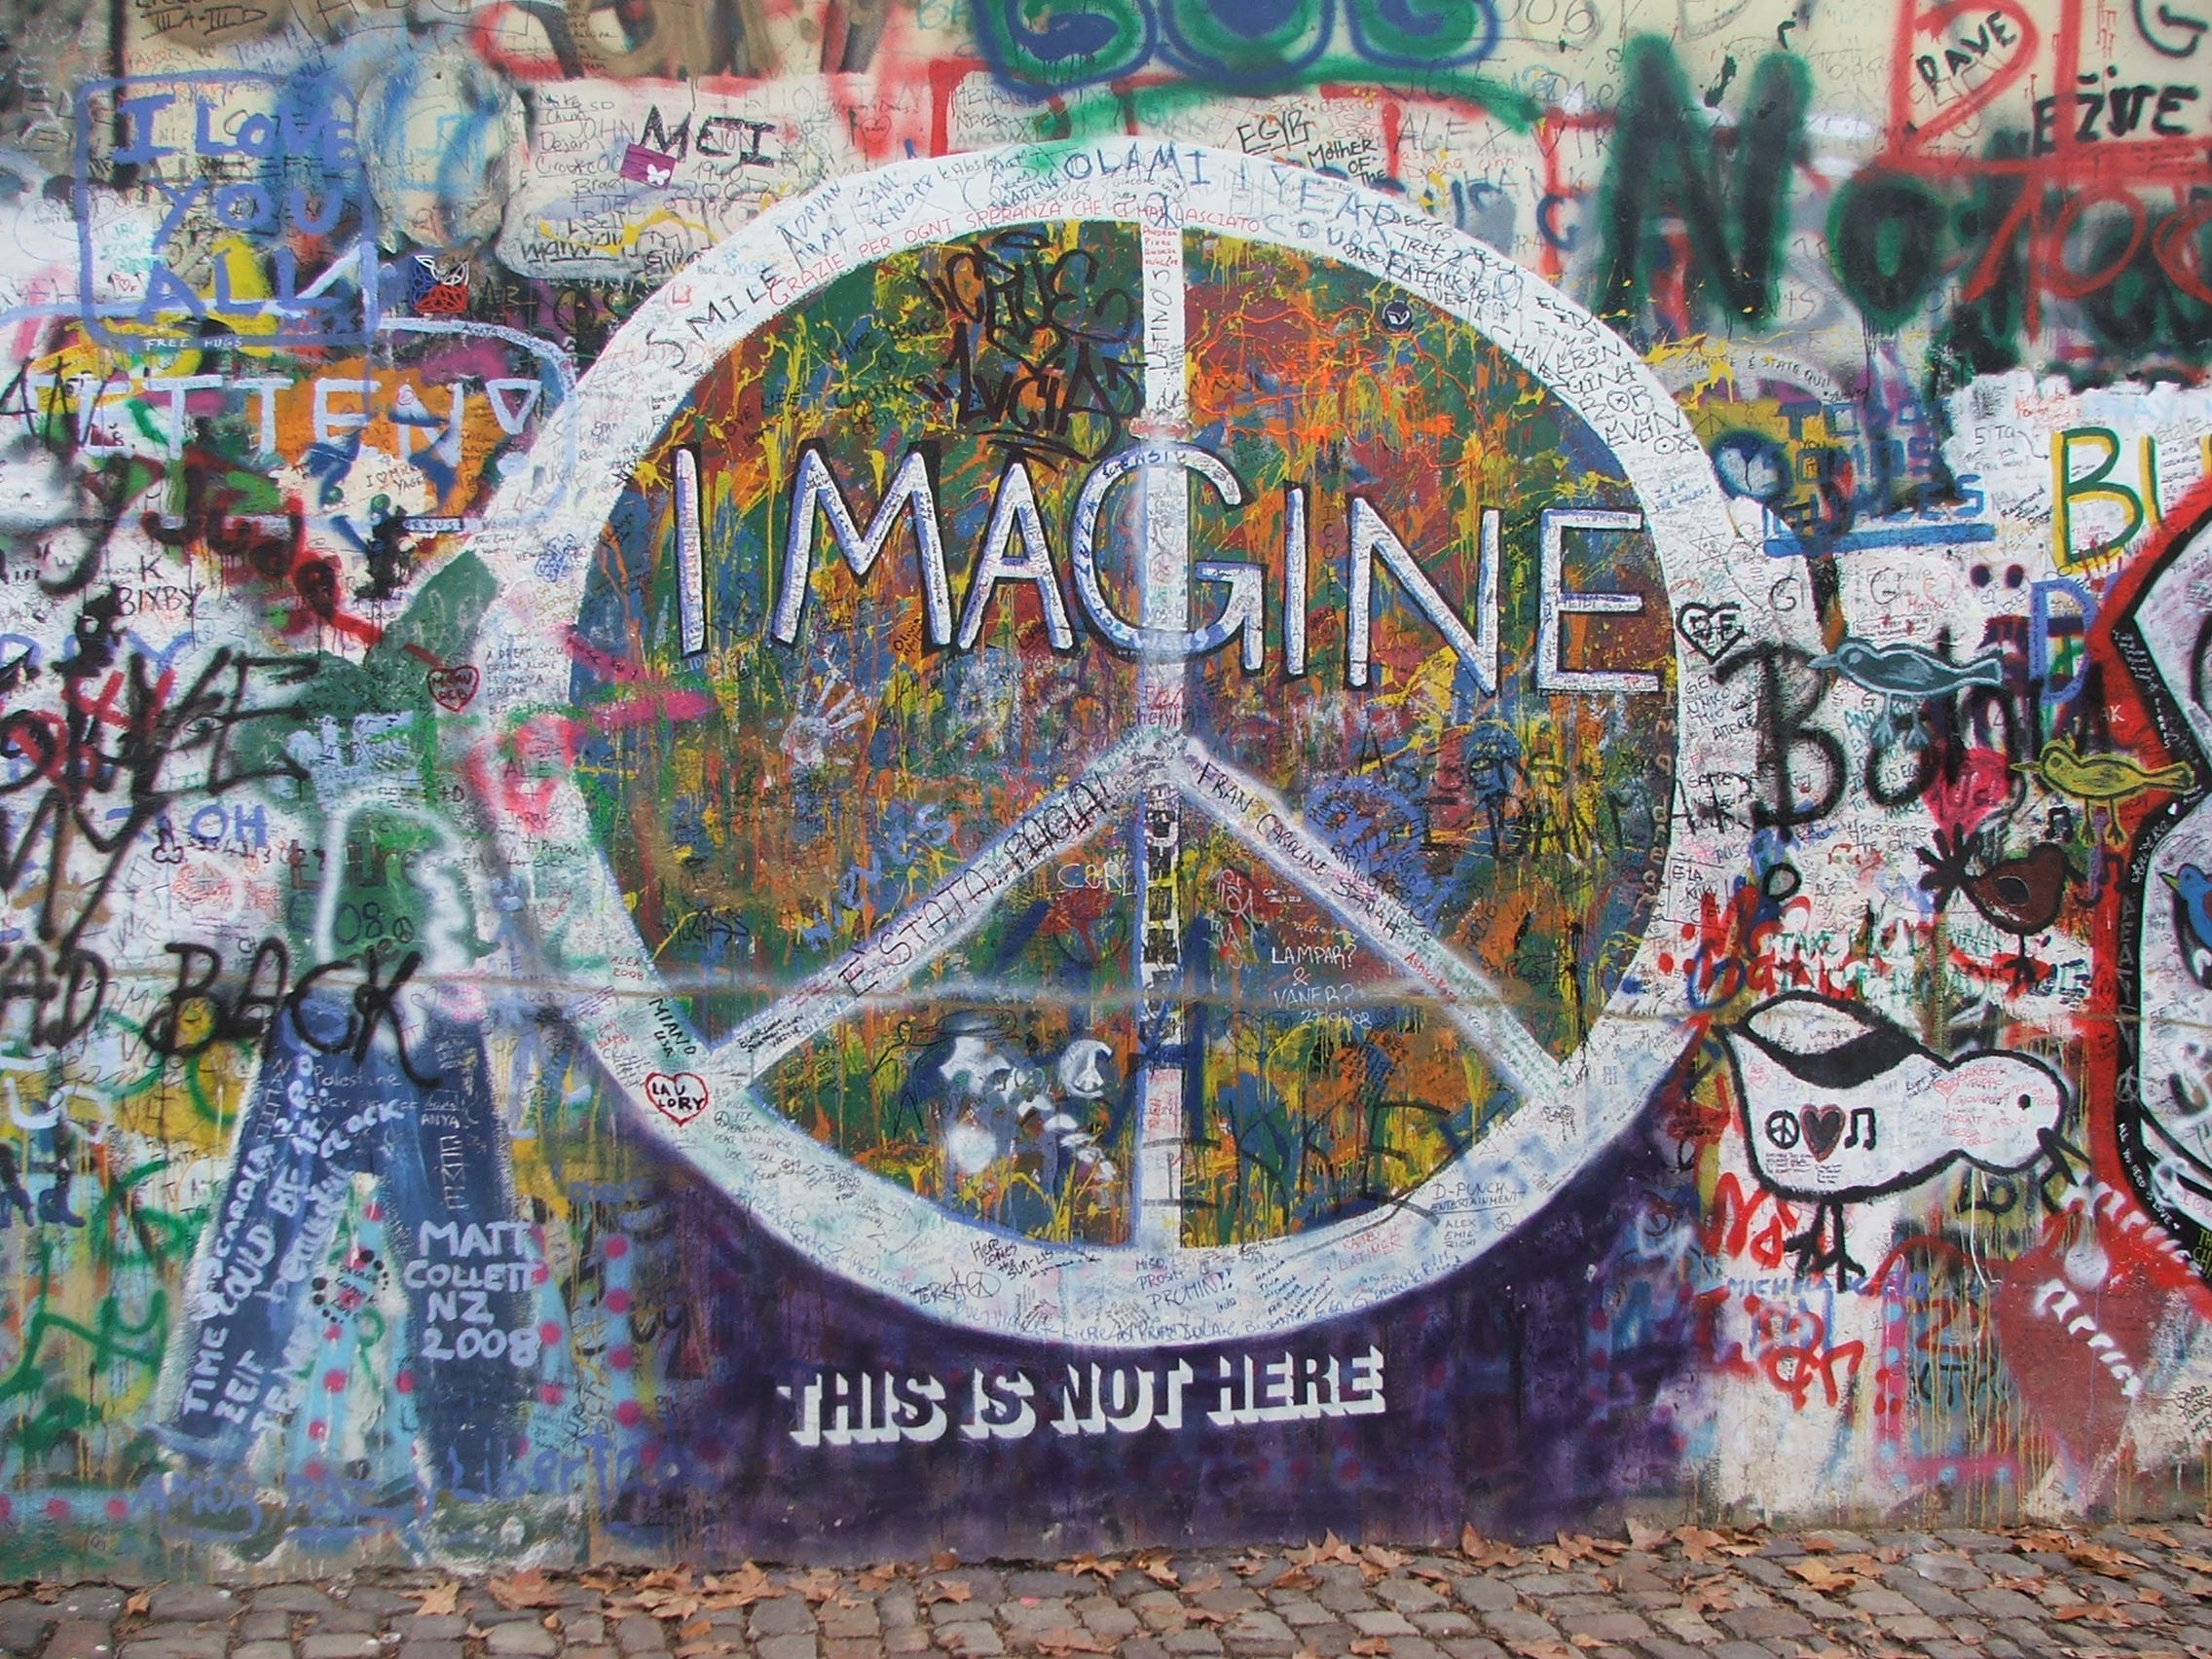 Download Add to favorites. More. Report. Palette: Tags: John Lennon imagine